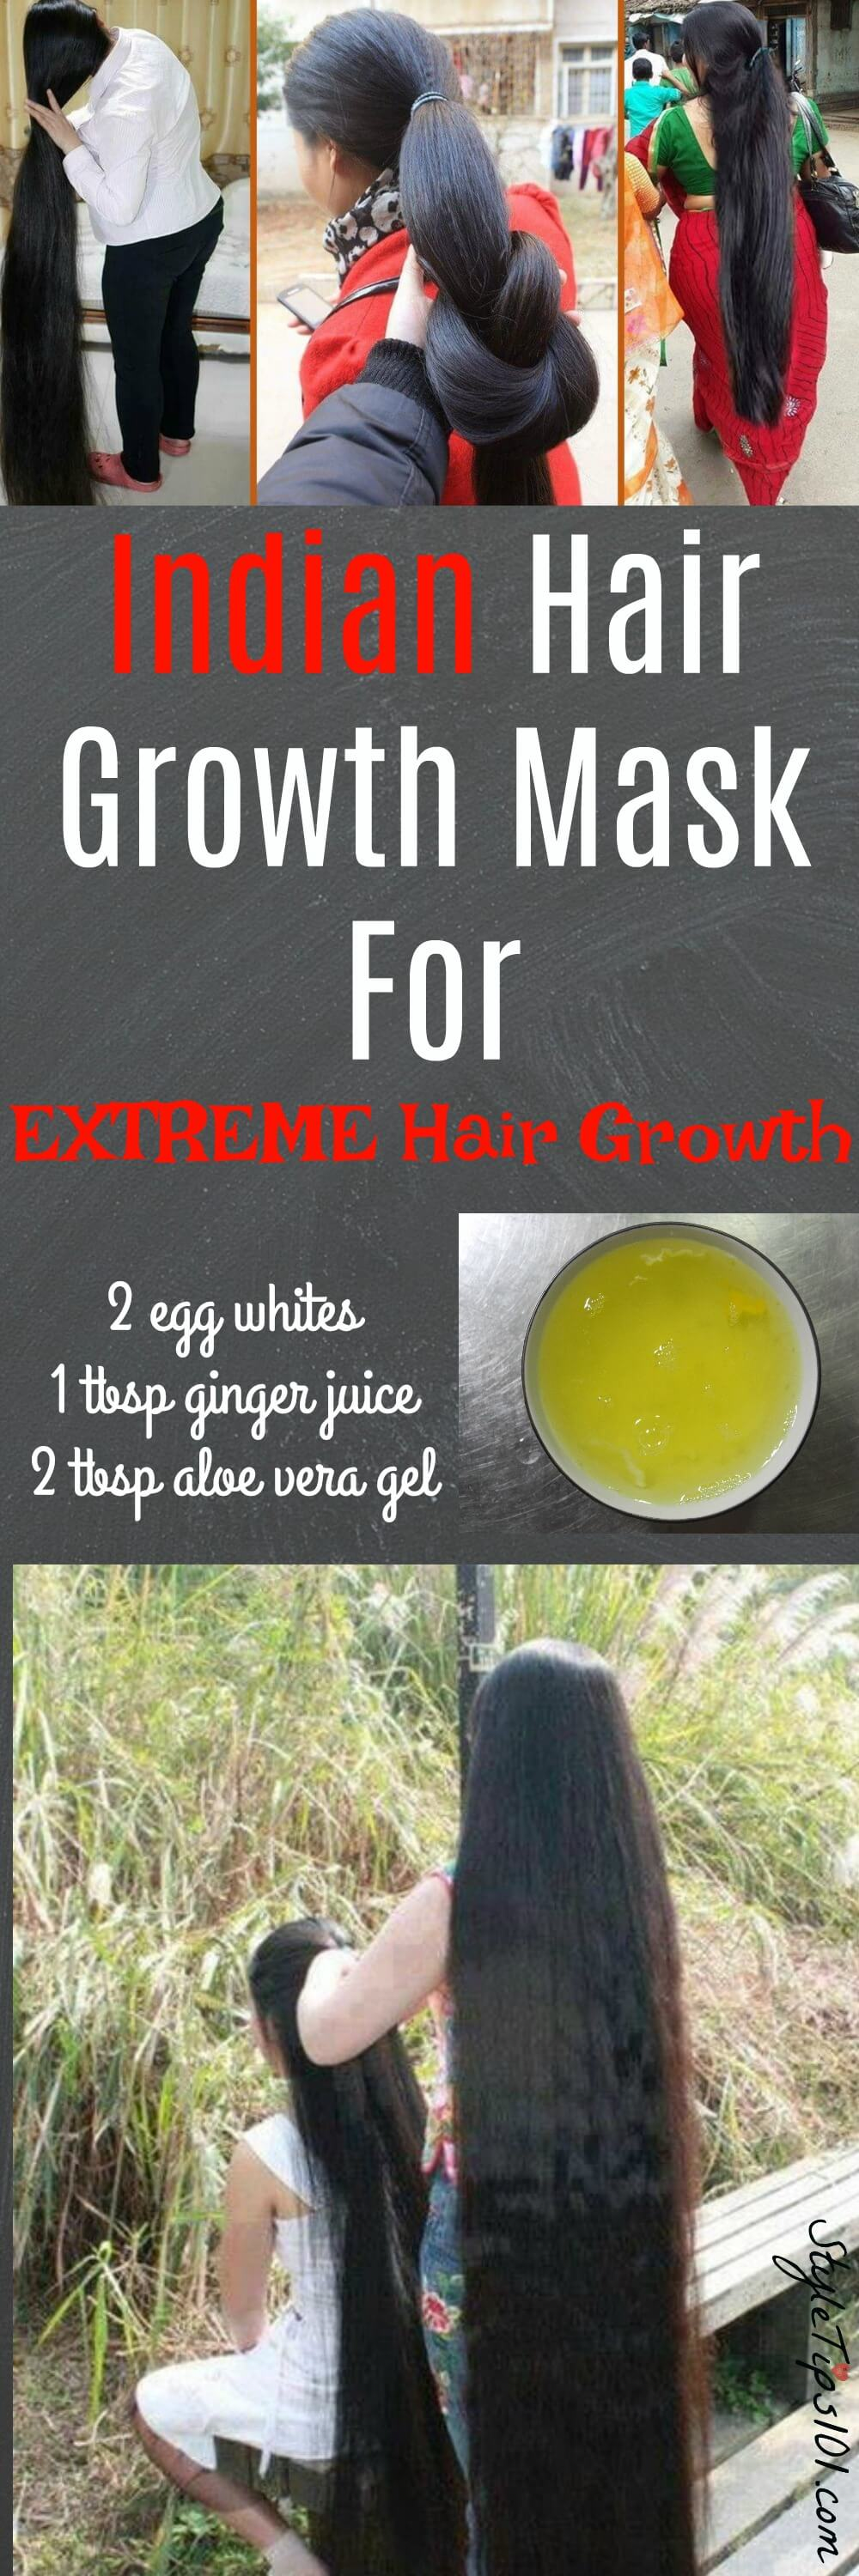 Use this DIY egg mask for hair growth 2-3 times a week for super shiny, healthy, and faster growing hair. Enriched with ginger juice and aloe vera gel. #hairgrowth #diybeauty